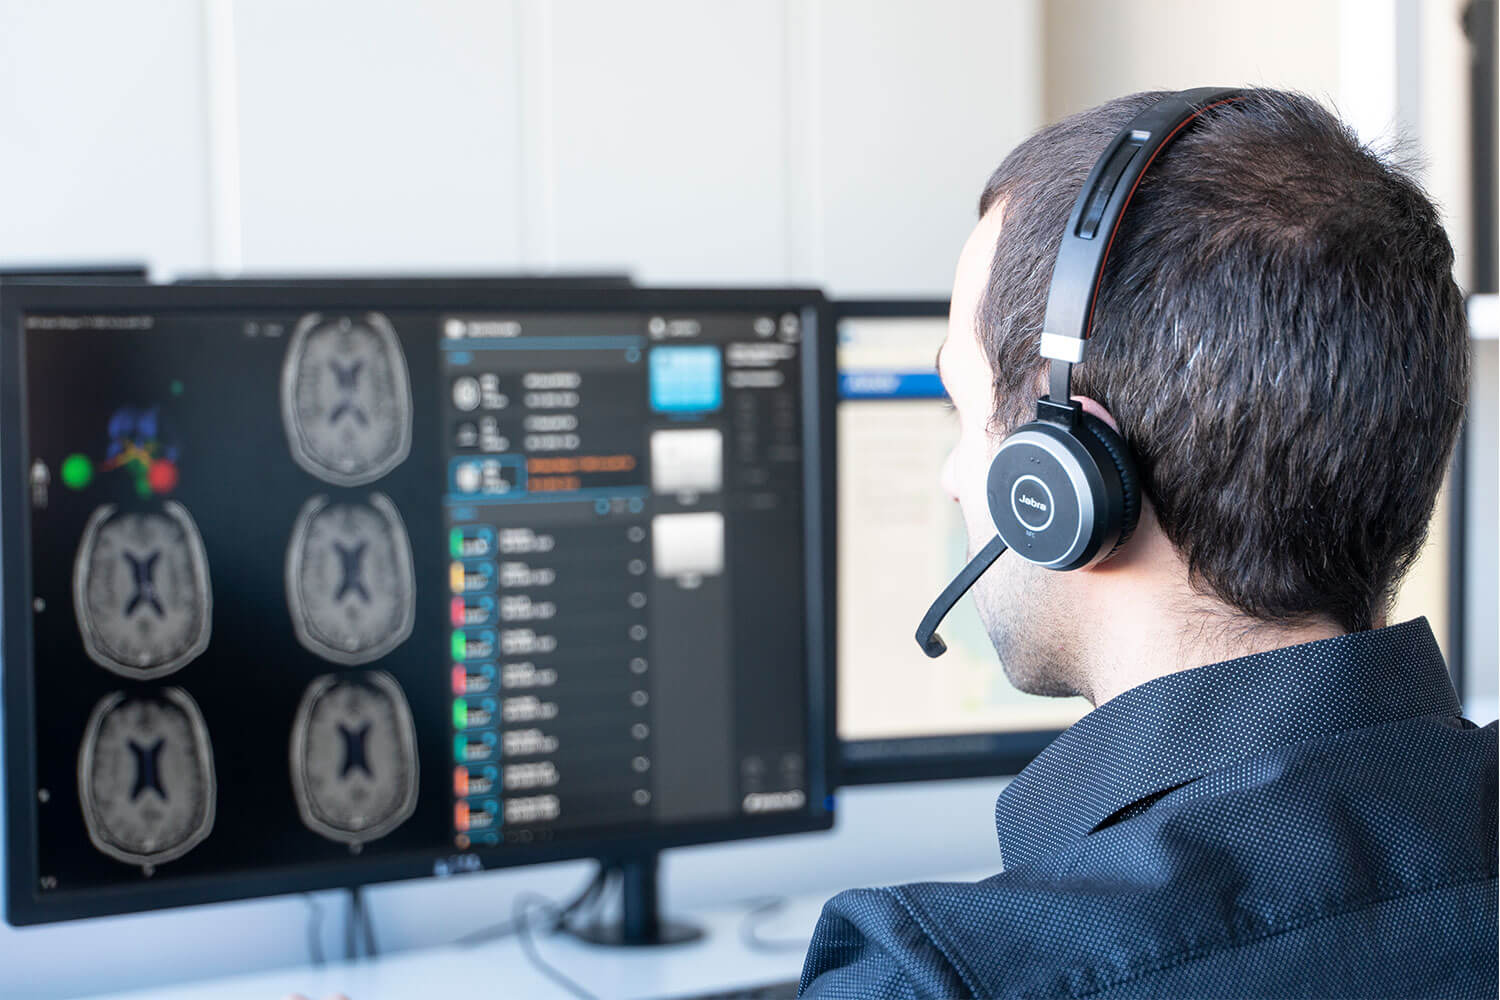 Service & Support at Brainlab is dedicated to helping facilities fix and maintain their Brainlab products